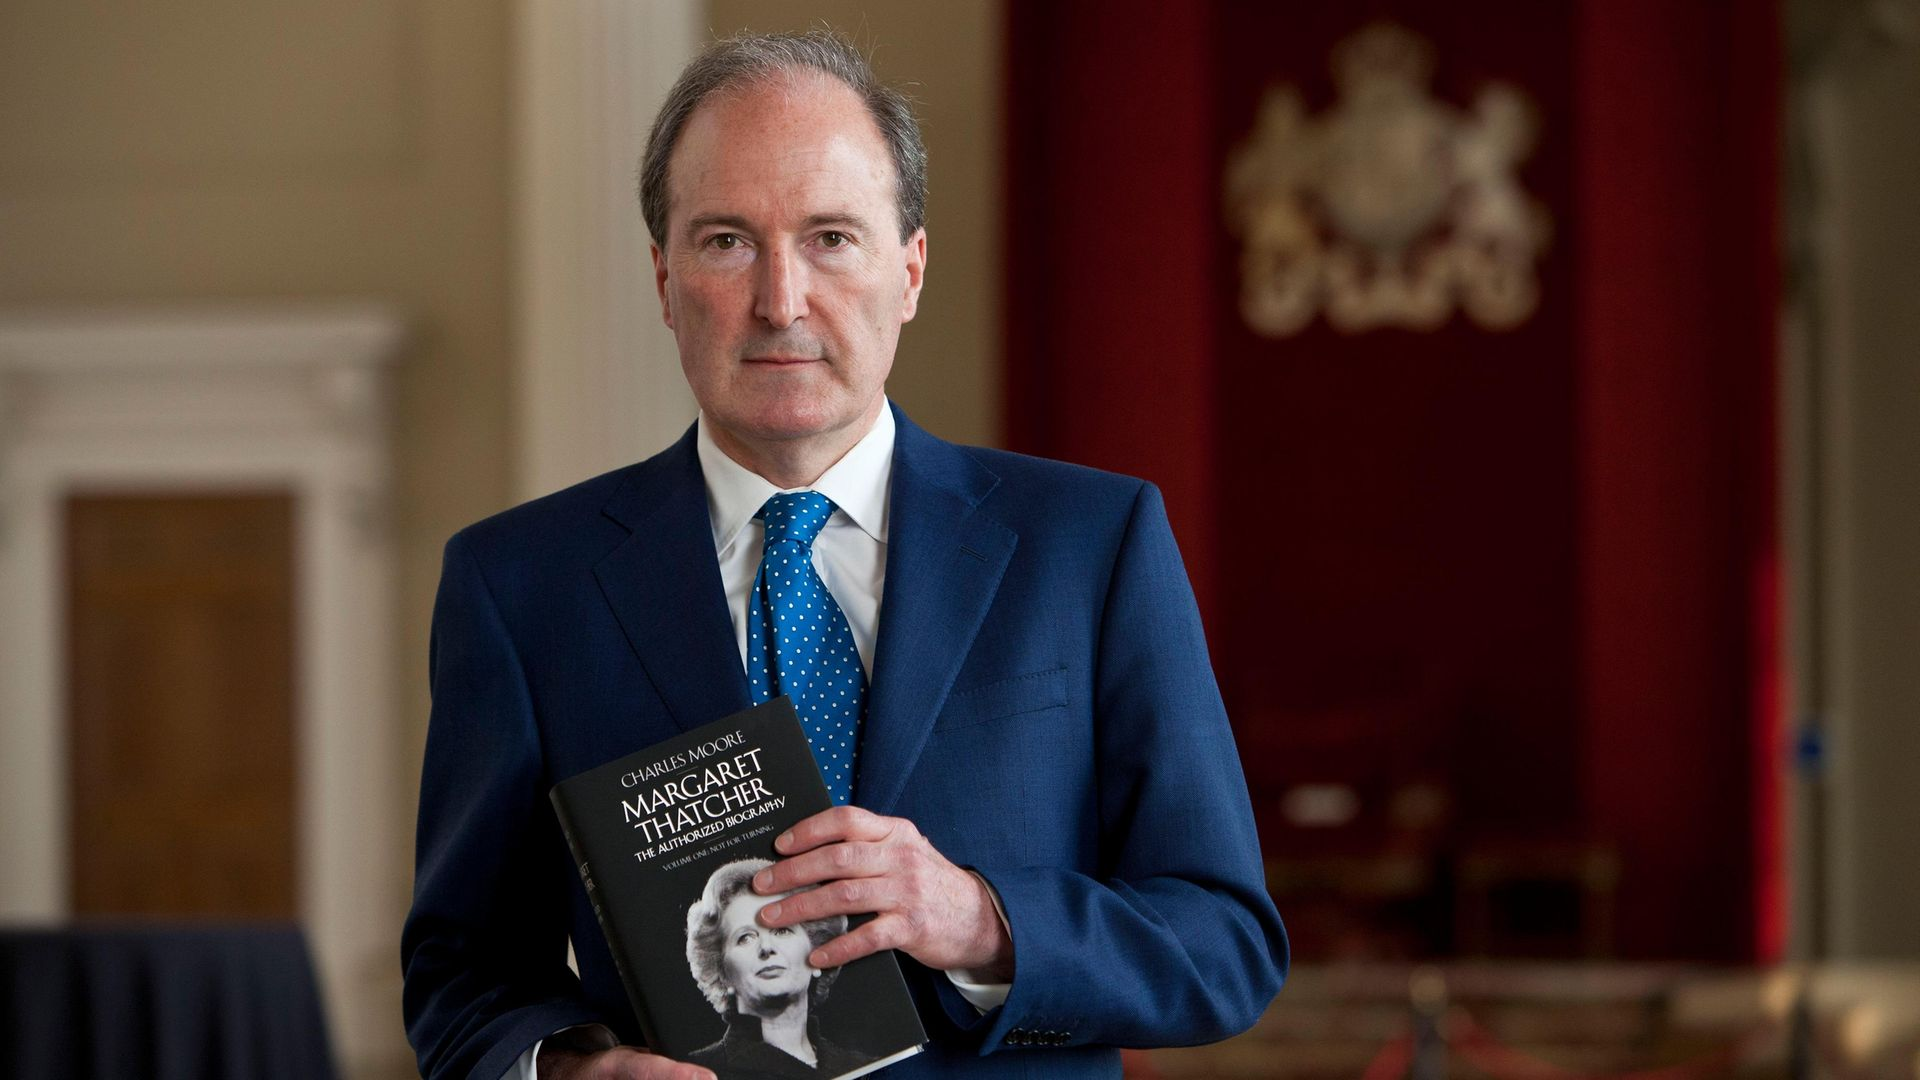 Charles Moore authored a book about Margaret Thatcher - Credit: David Levenson/Getty